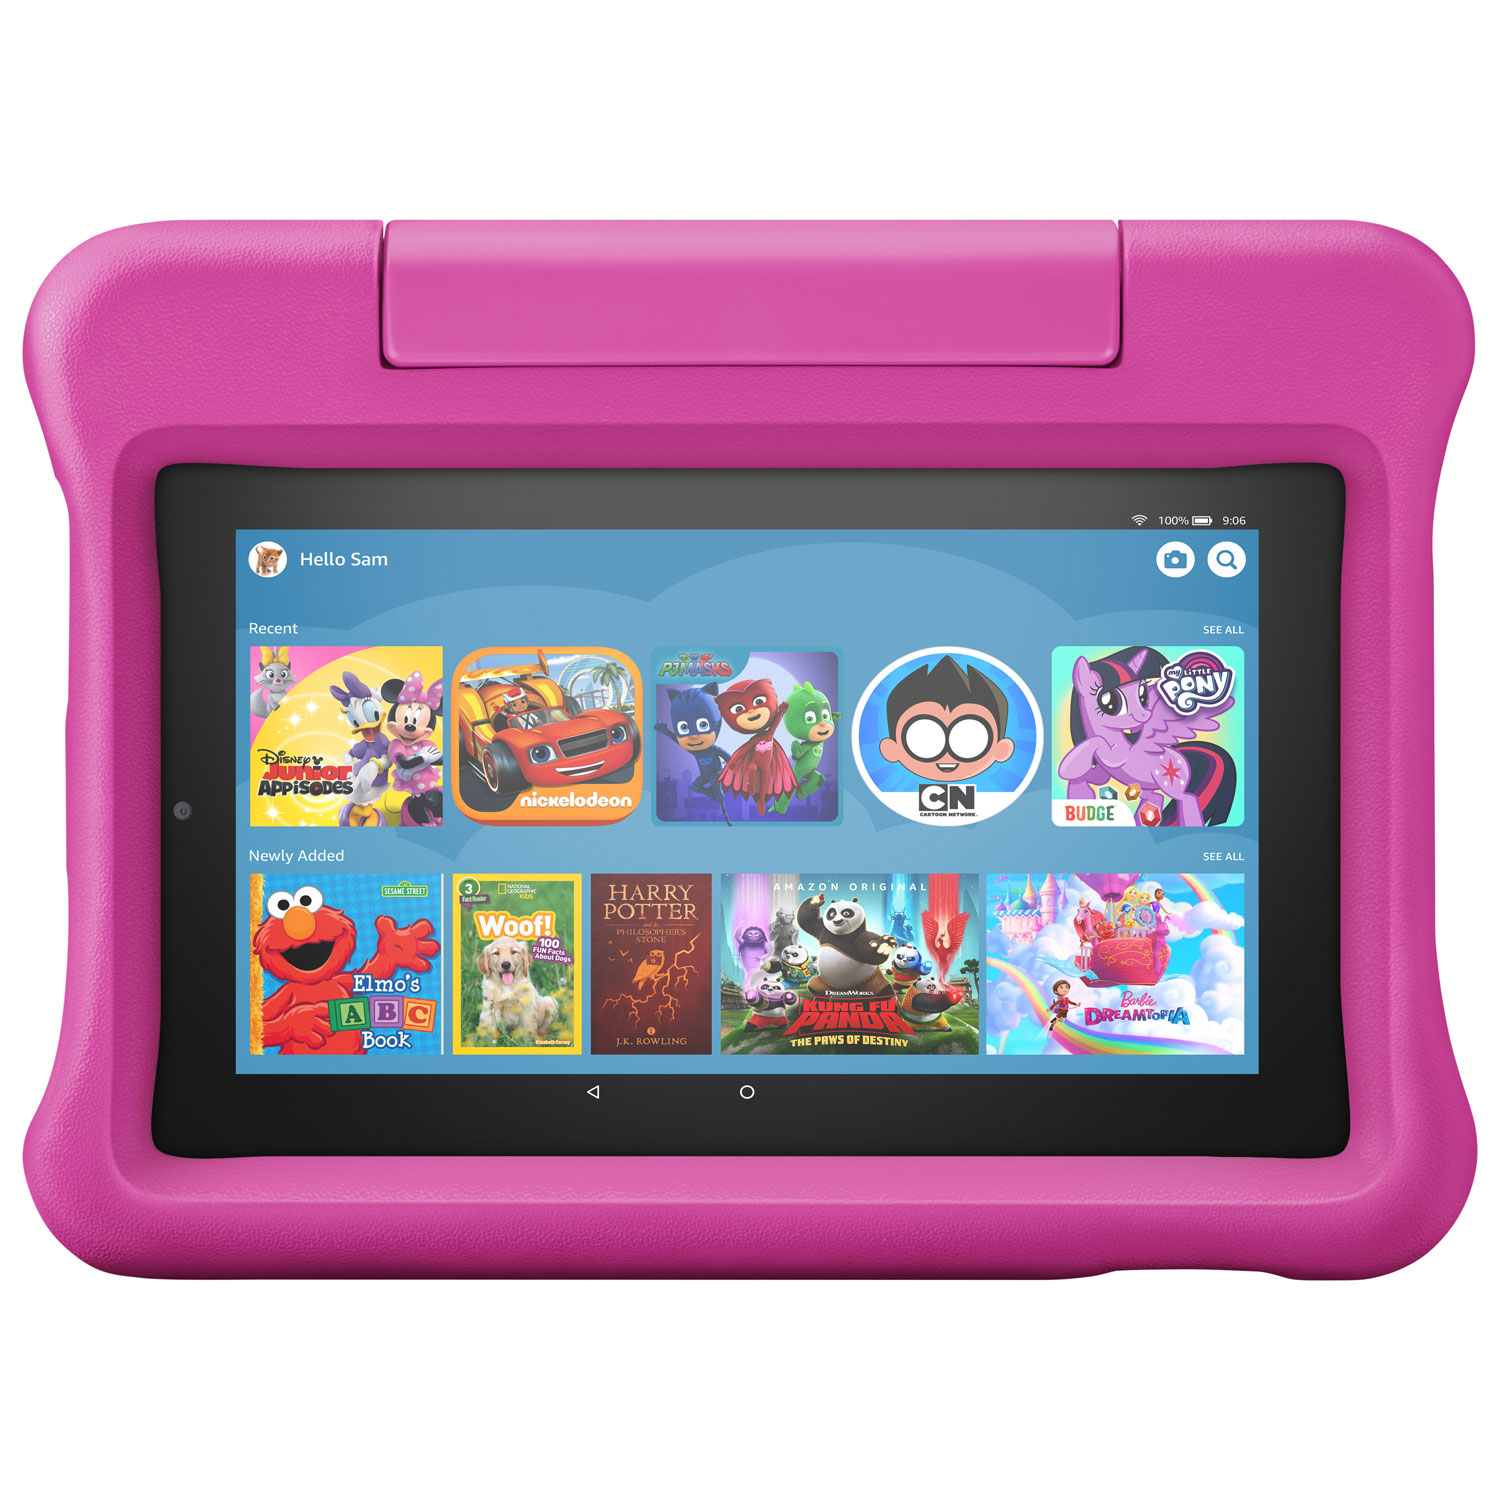 Amazon Fire 7 Kids Edition 7 16gb Fireos 6 Tablet With Mtk8163b 4 Core Processor Pink Best Buy Canada